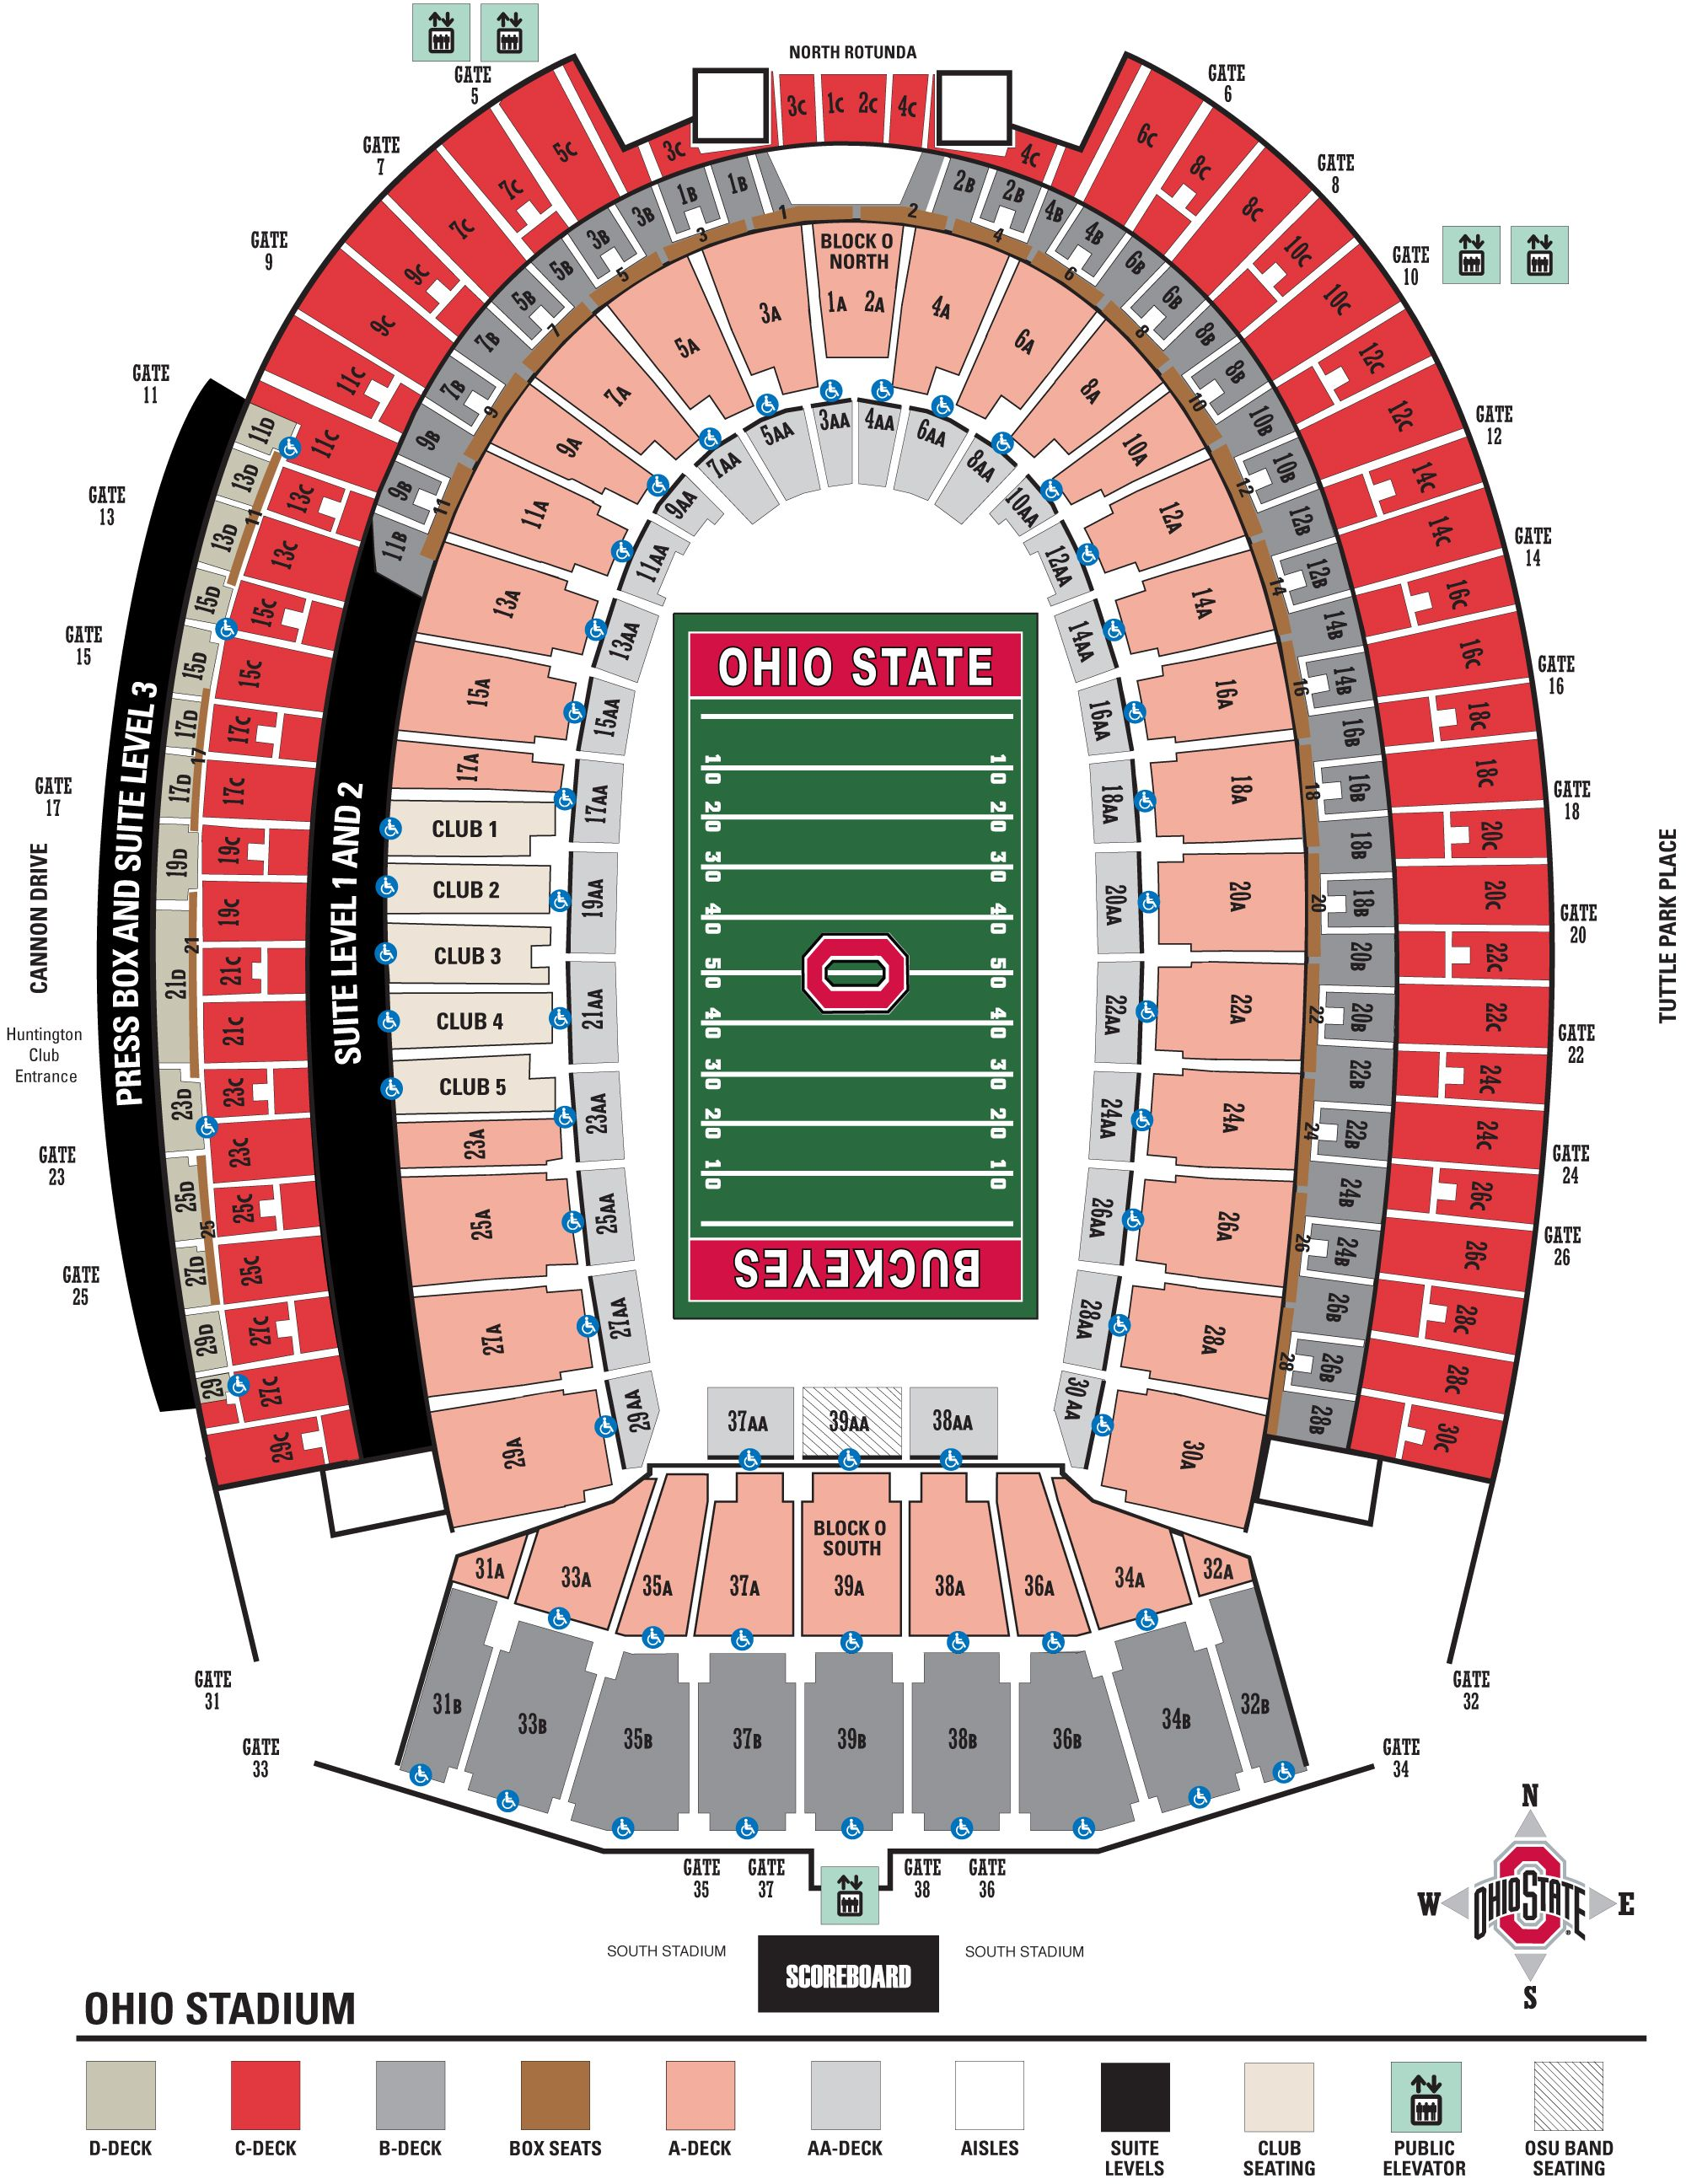 The Ohio State University Official Athletic Site Ohio State Buckeyes Ohio State Vs Michigan Ohio State Buckeyes Football